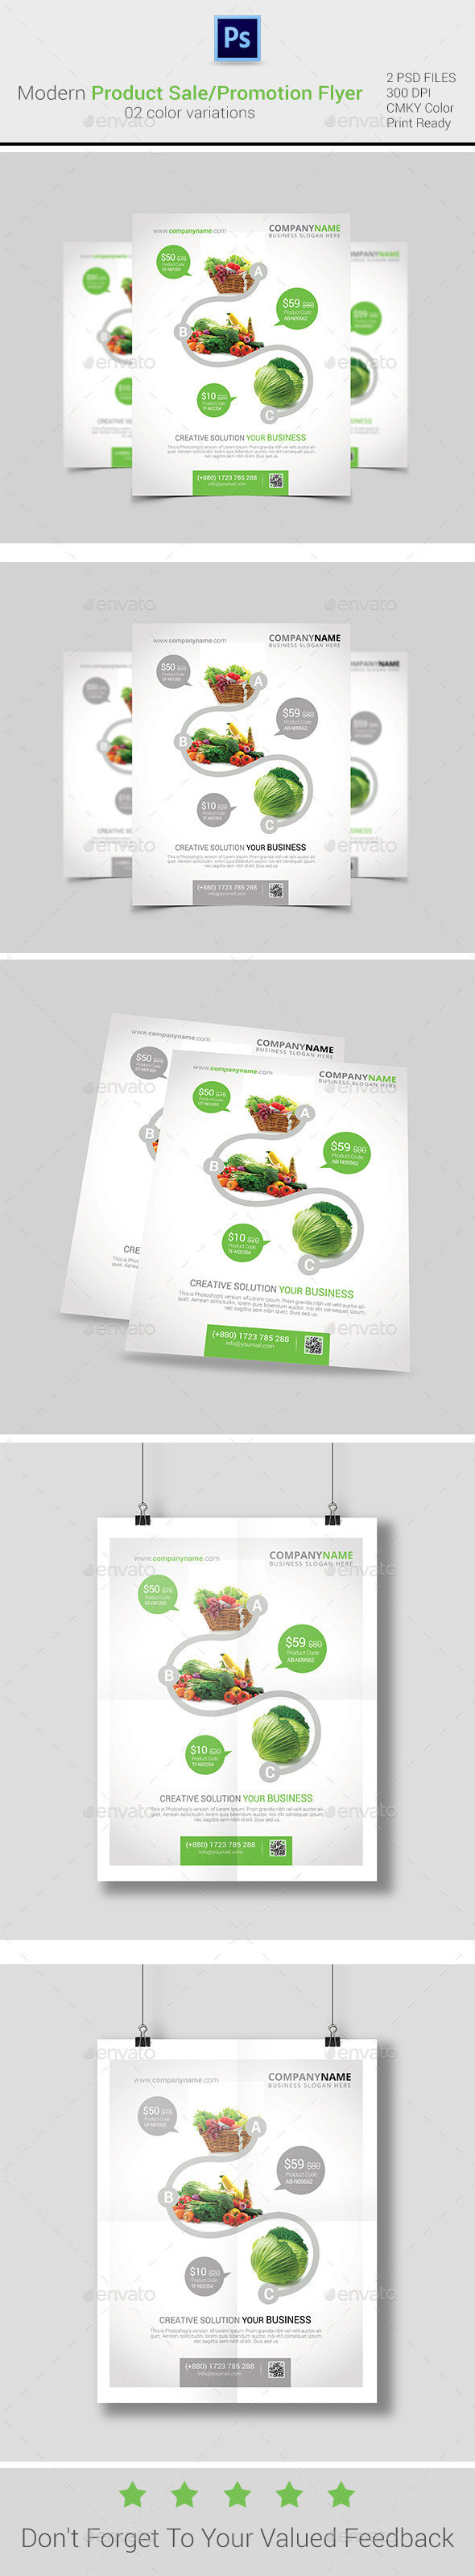 Product Sale/Promotion Flyer/Poster/ad Templates - Commerce Flyers